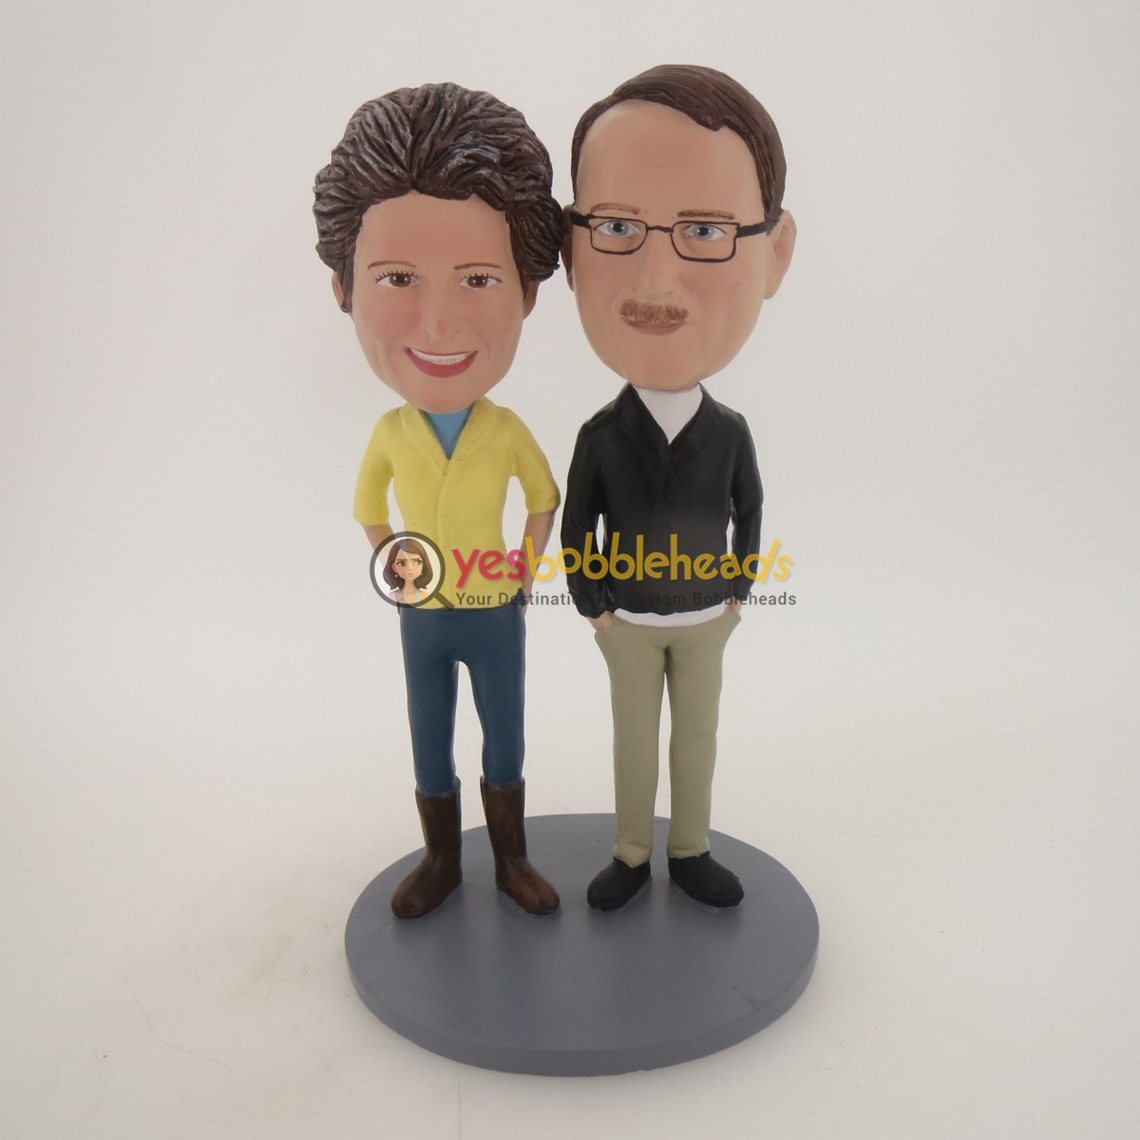 Picture of Custom Bobblehead Doll: Hands In Pocket Couple